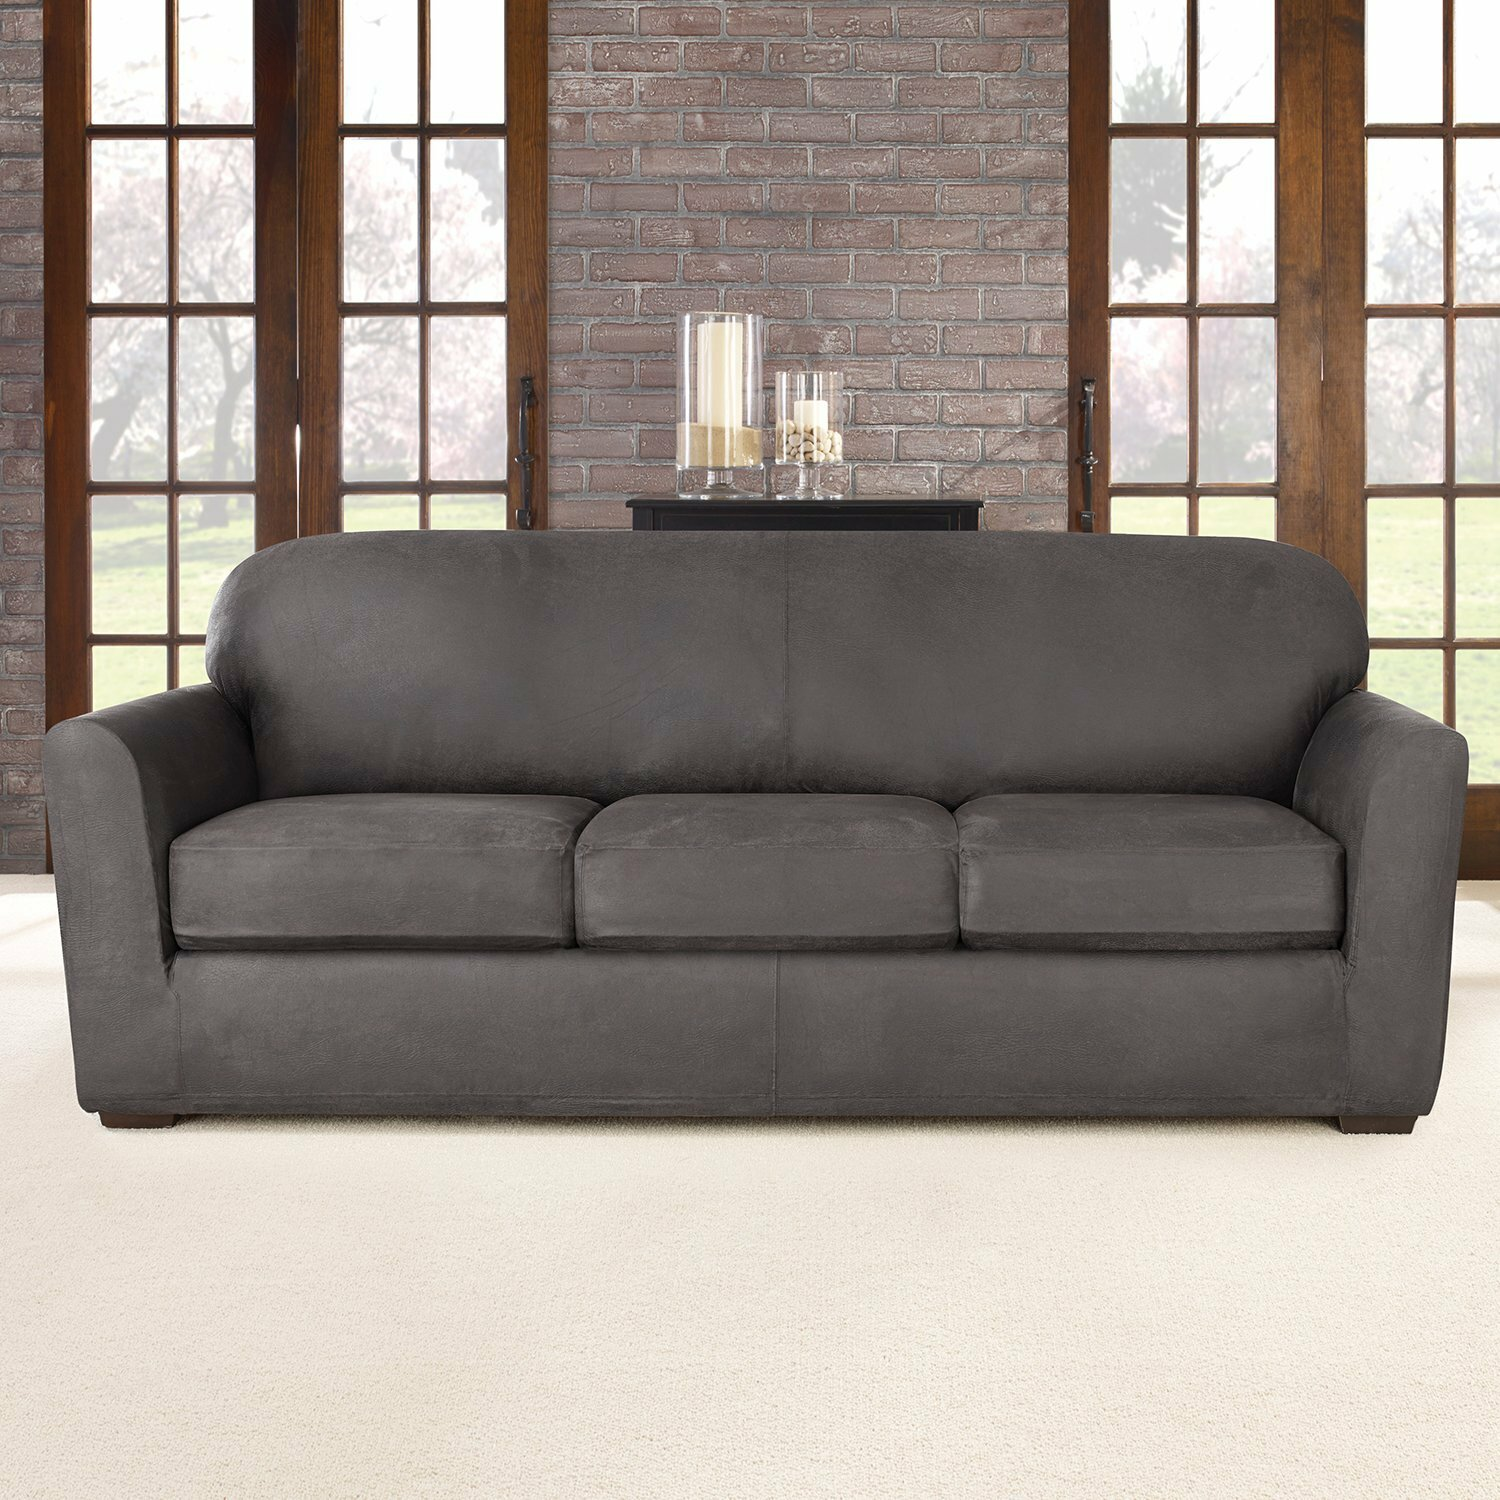 Brown Leather Sofa Covers Picture 25 Sectional Leather Sofa